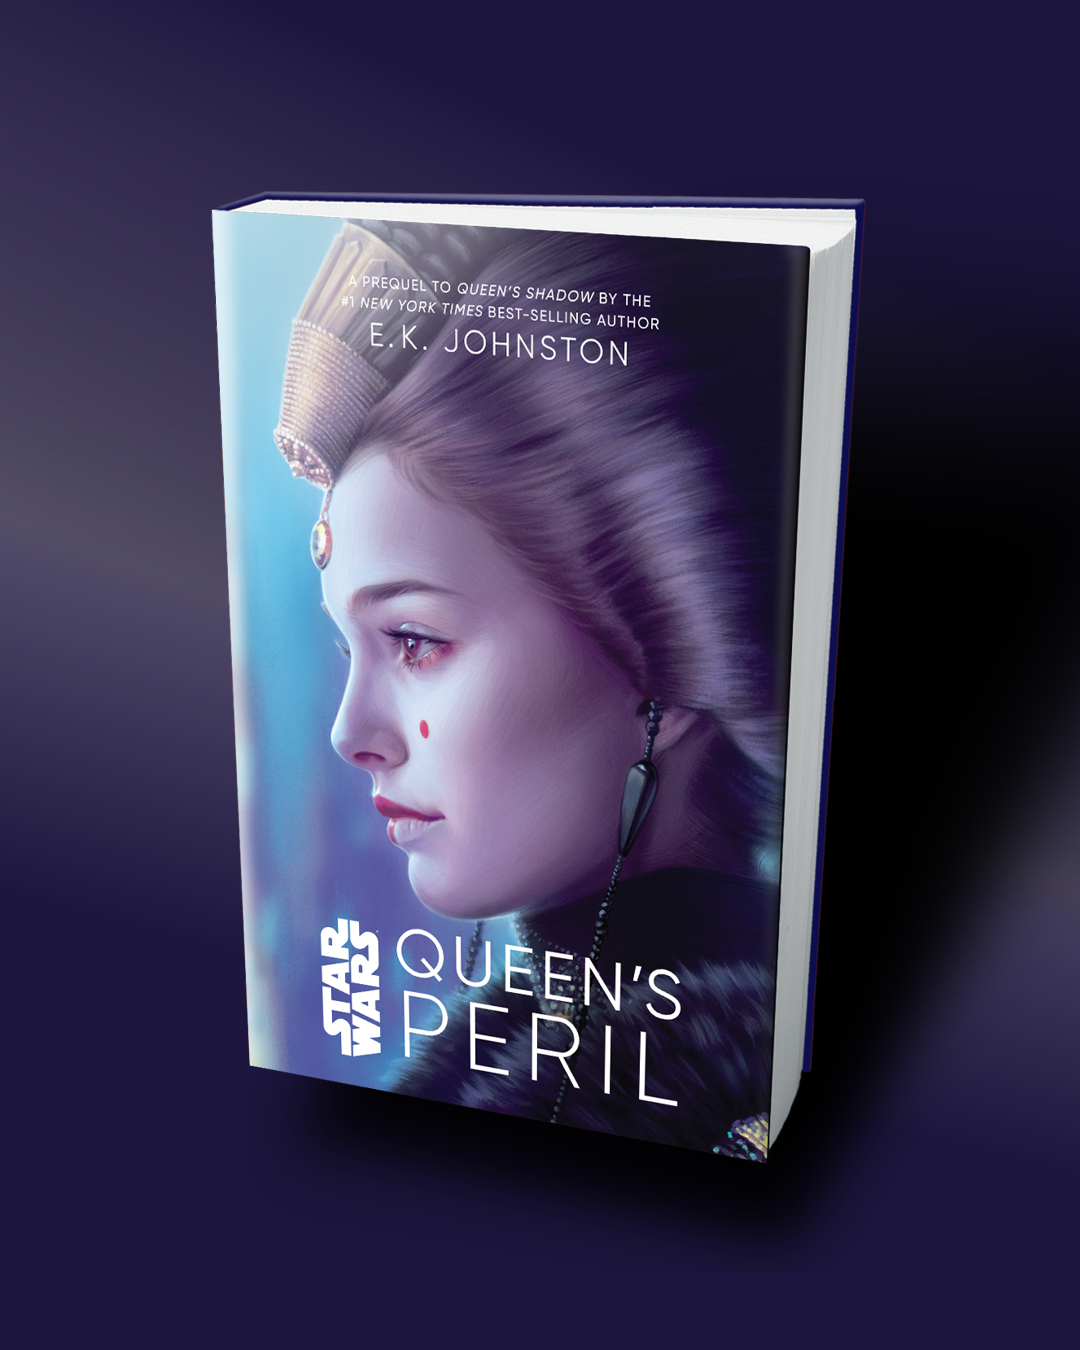 Queen's Peril 3D Cover from Disney Lucasfilm